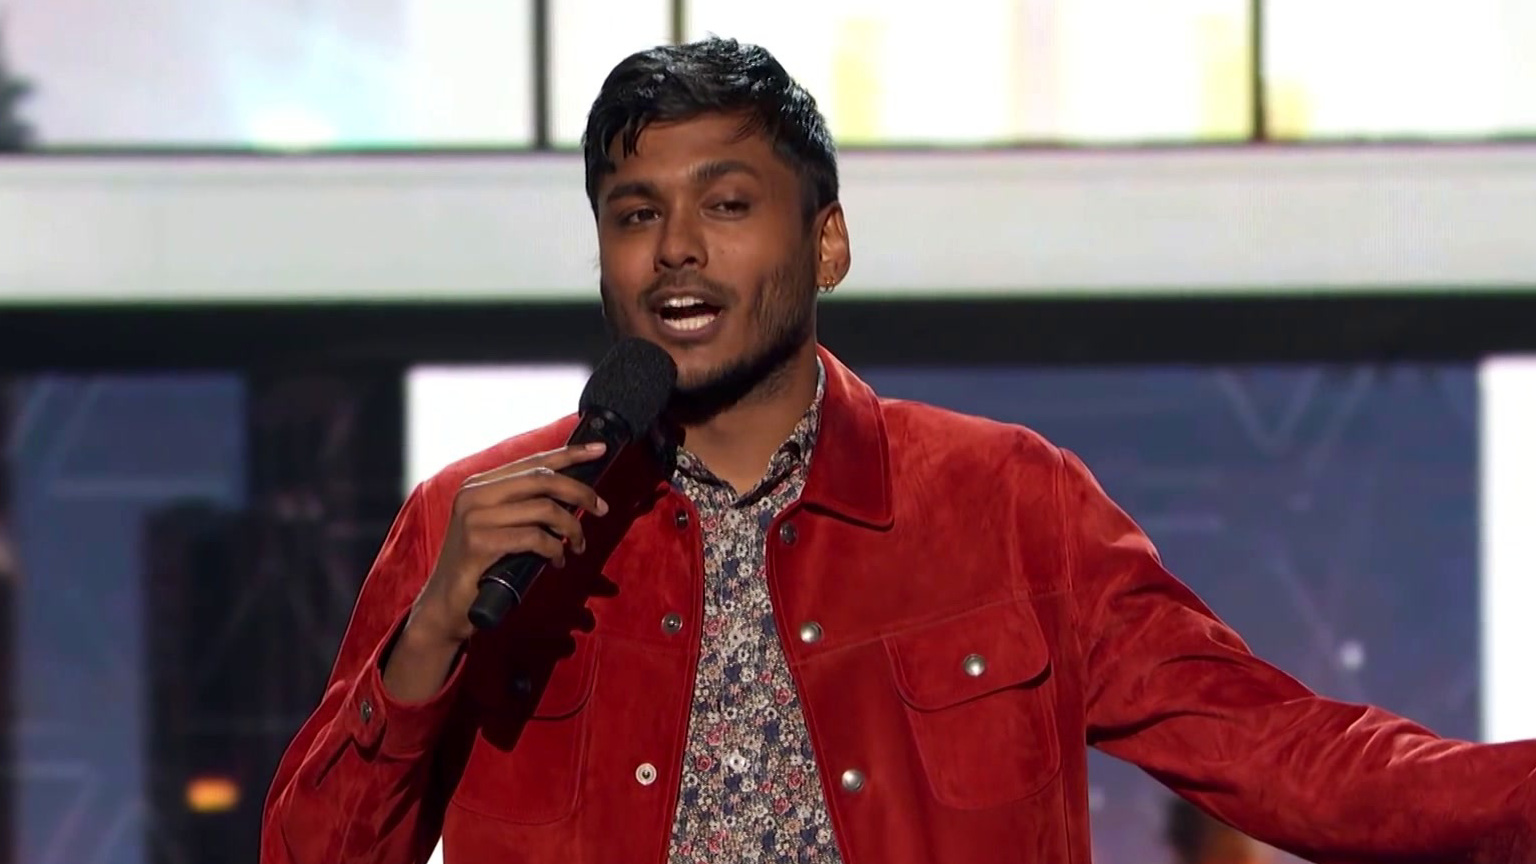 America's Got Talent: Usama Siddiquee Will Make You Laugh With His Hilarious Comedy